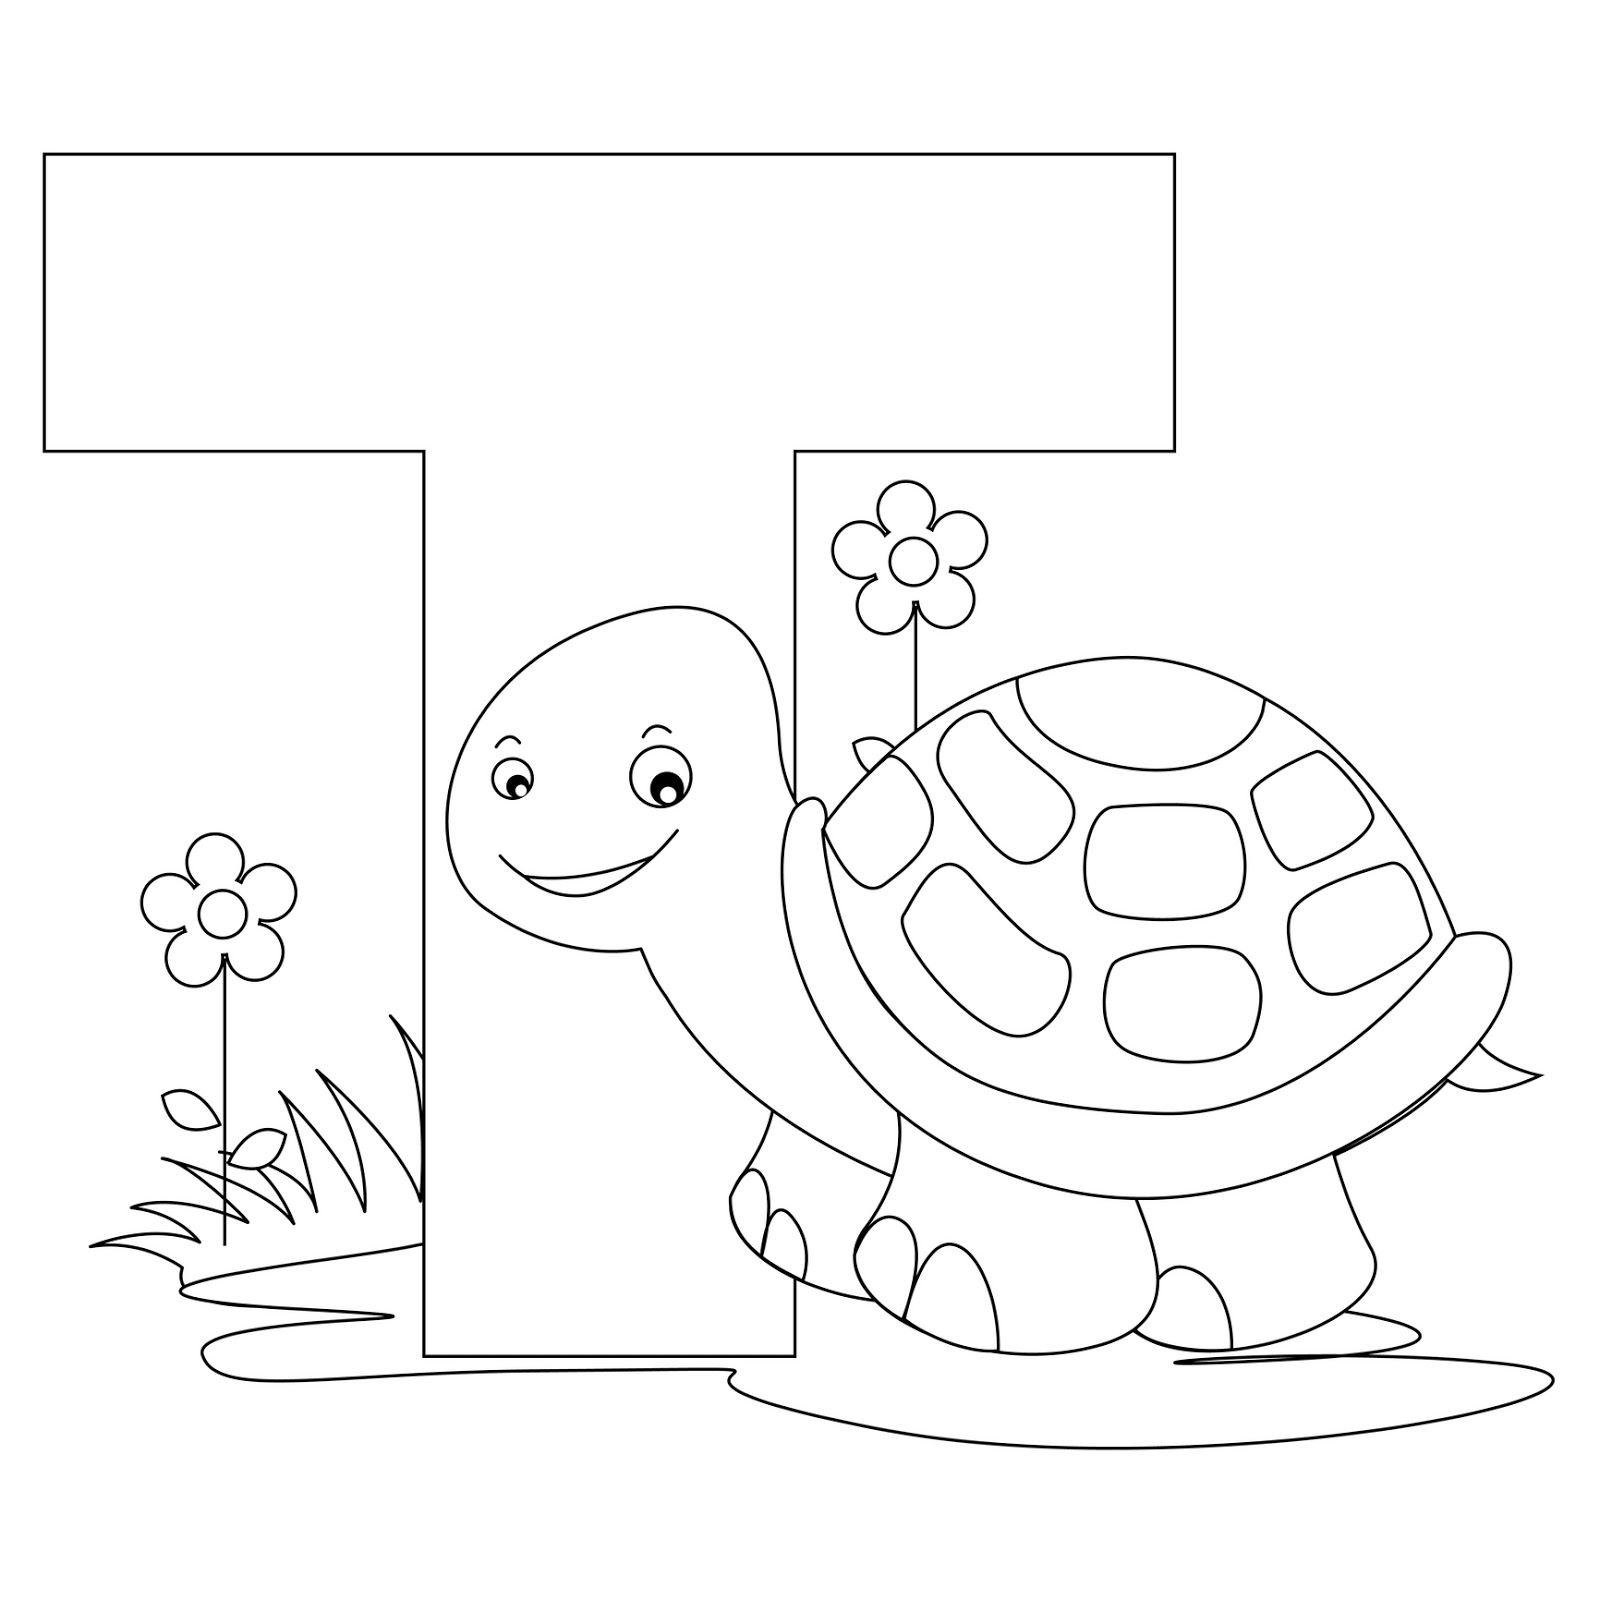 dora coloring pages - letter t coloring page